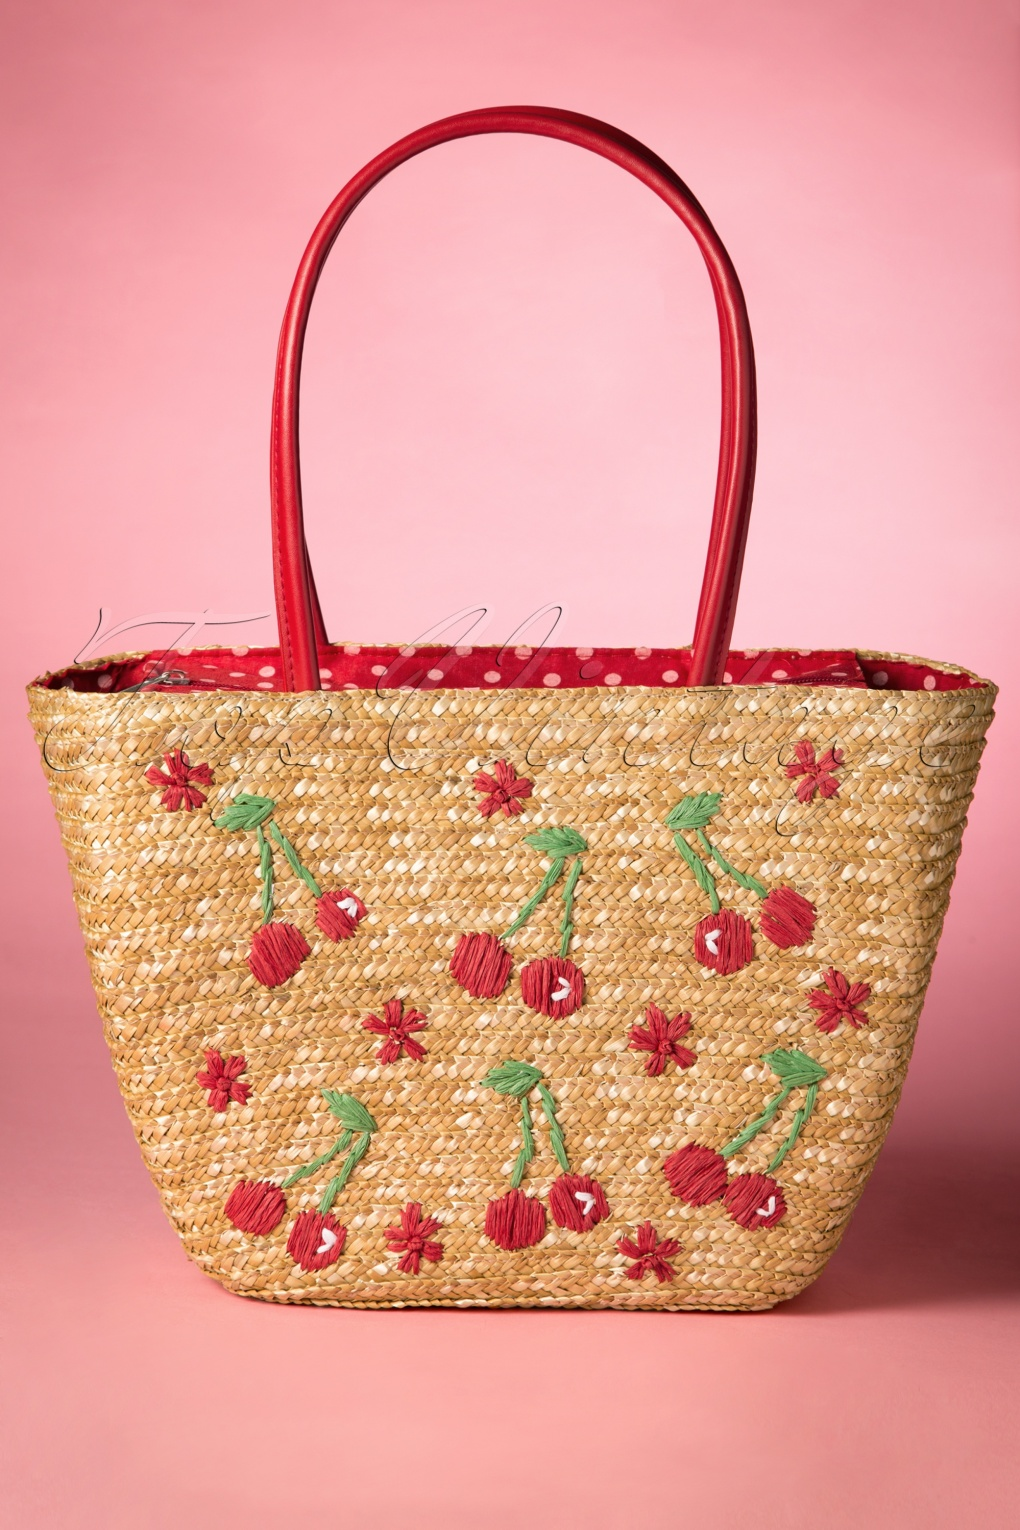 1950s Handbags, Purses, and Evening Bag Styles 50s Cherry Straw Picnic Bag £25.57 AT vintagedancer.com